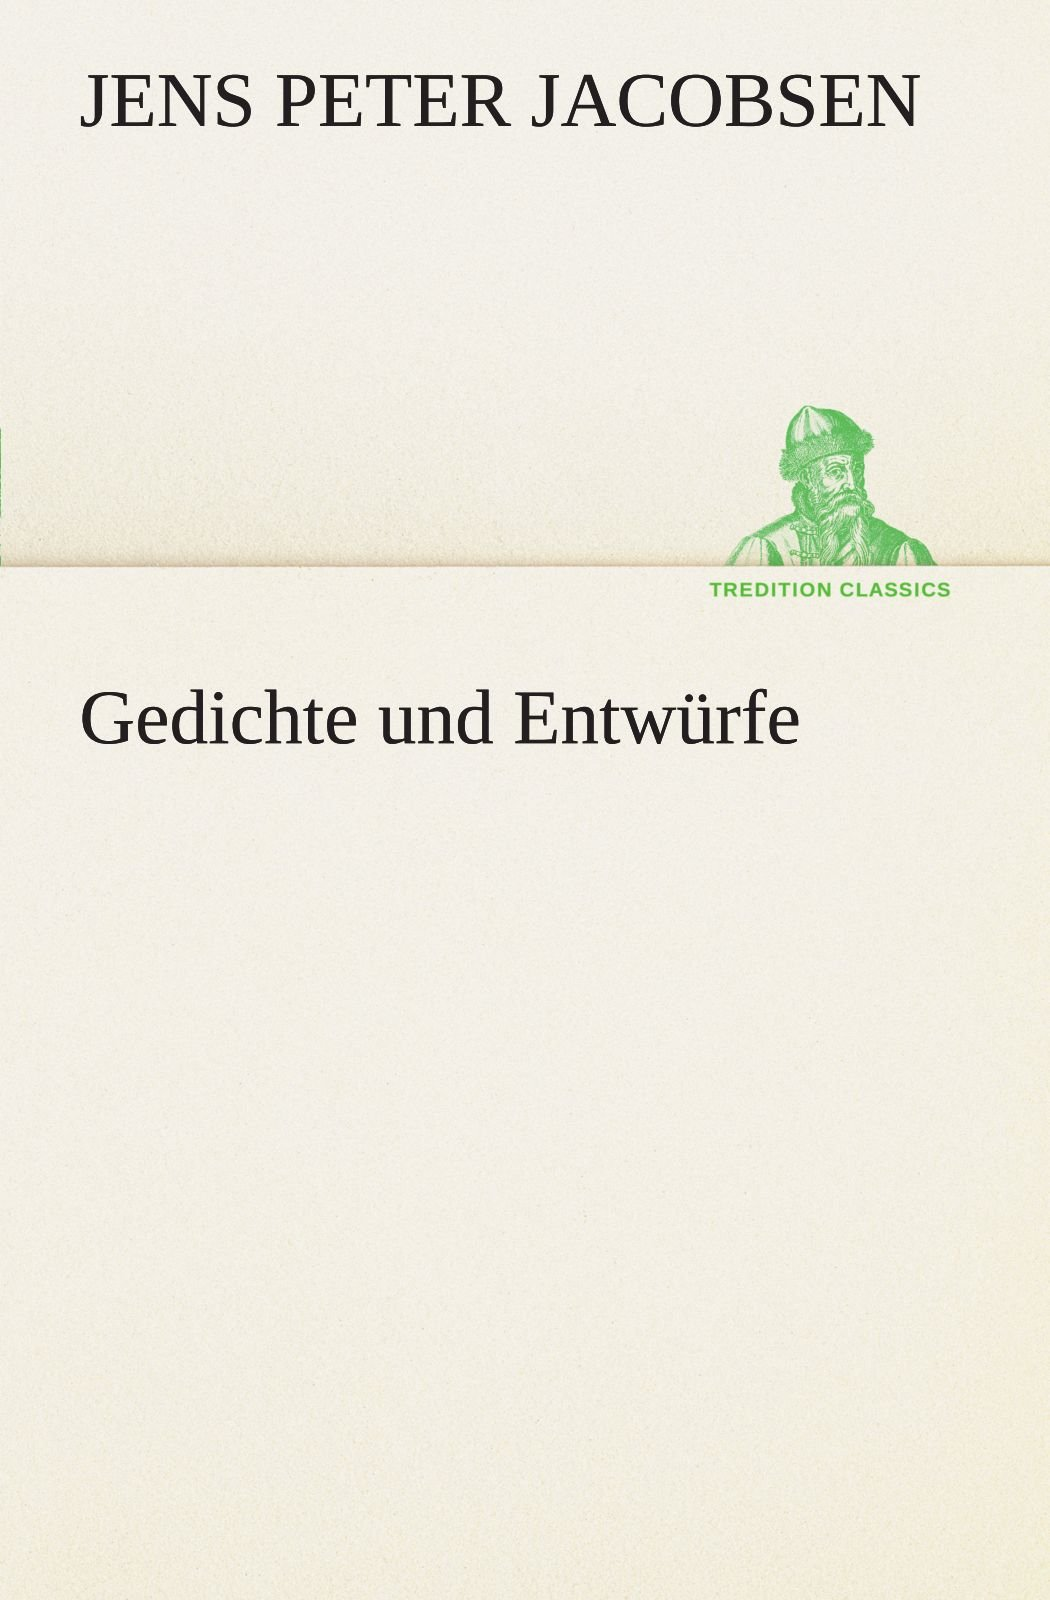 Gedichte und Entwürfe (TREDITION CLASSICS) (German Edition) ebook